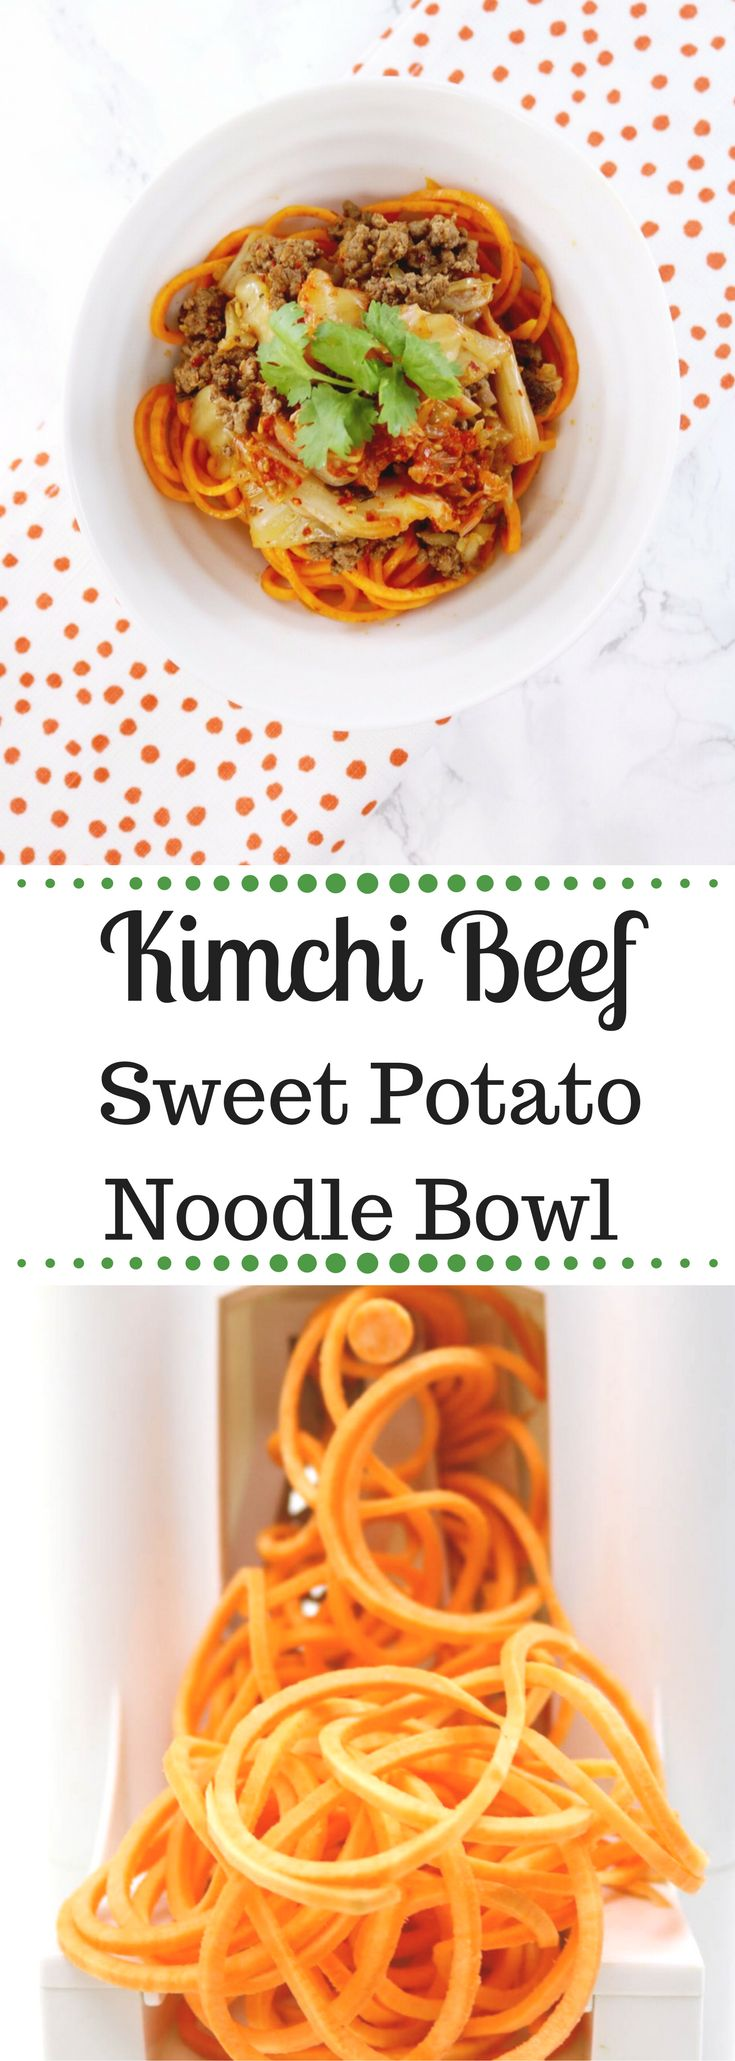 This quick spiralized Kimchi Beef Sweet Potato Noodle Bowl satisfies paleo noodle cravings while boosting gut-health. Paleo + W